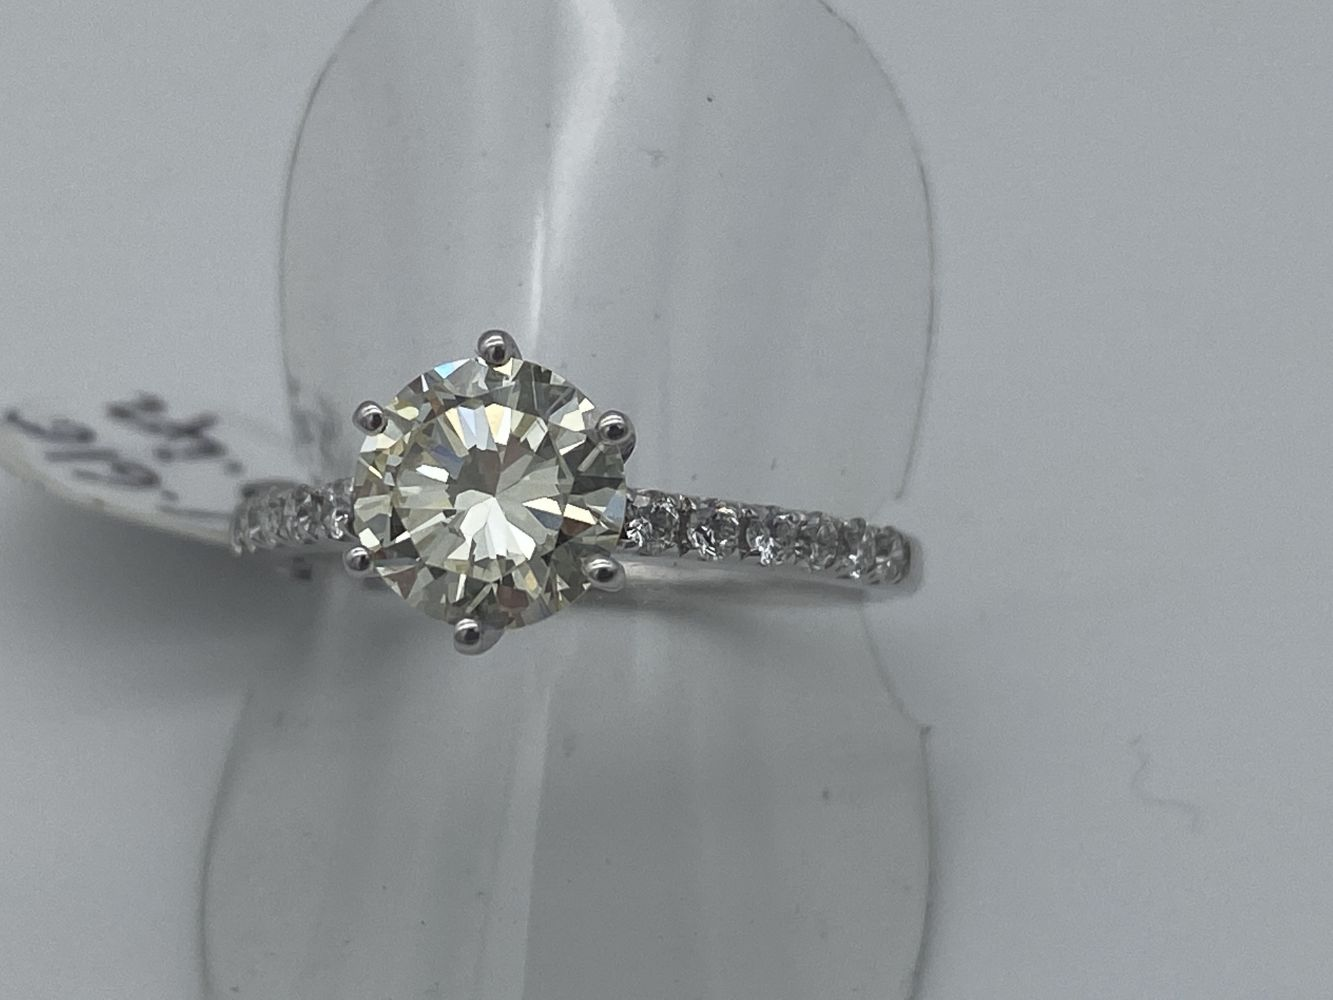 GENERAL SALE OF JEWELLERY, WATCHES ETC